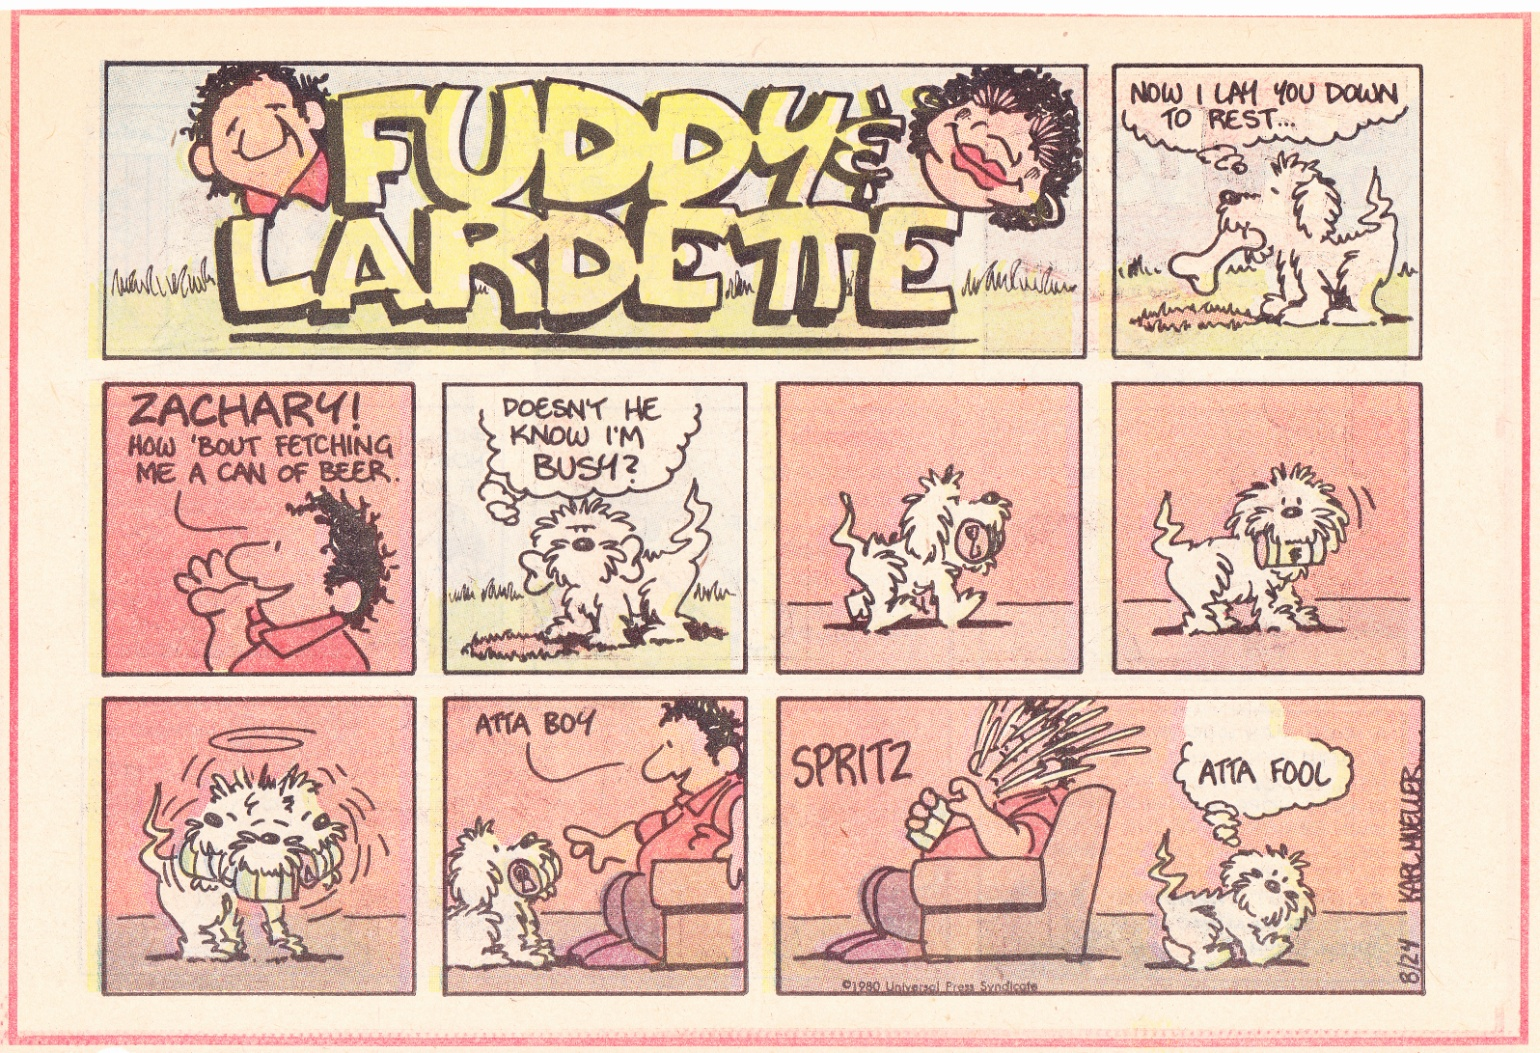 C:\Users\Robert\Documents\CARTOONING ILLUSTRATION ANIMATION\IMAGE CARTOON\IMAGE CARTOON F\FUDDY & LARDETTE, Winnipeg Free Press, 24 Aug. 1980.jpg